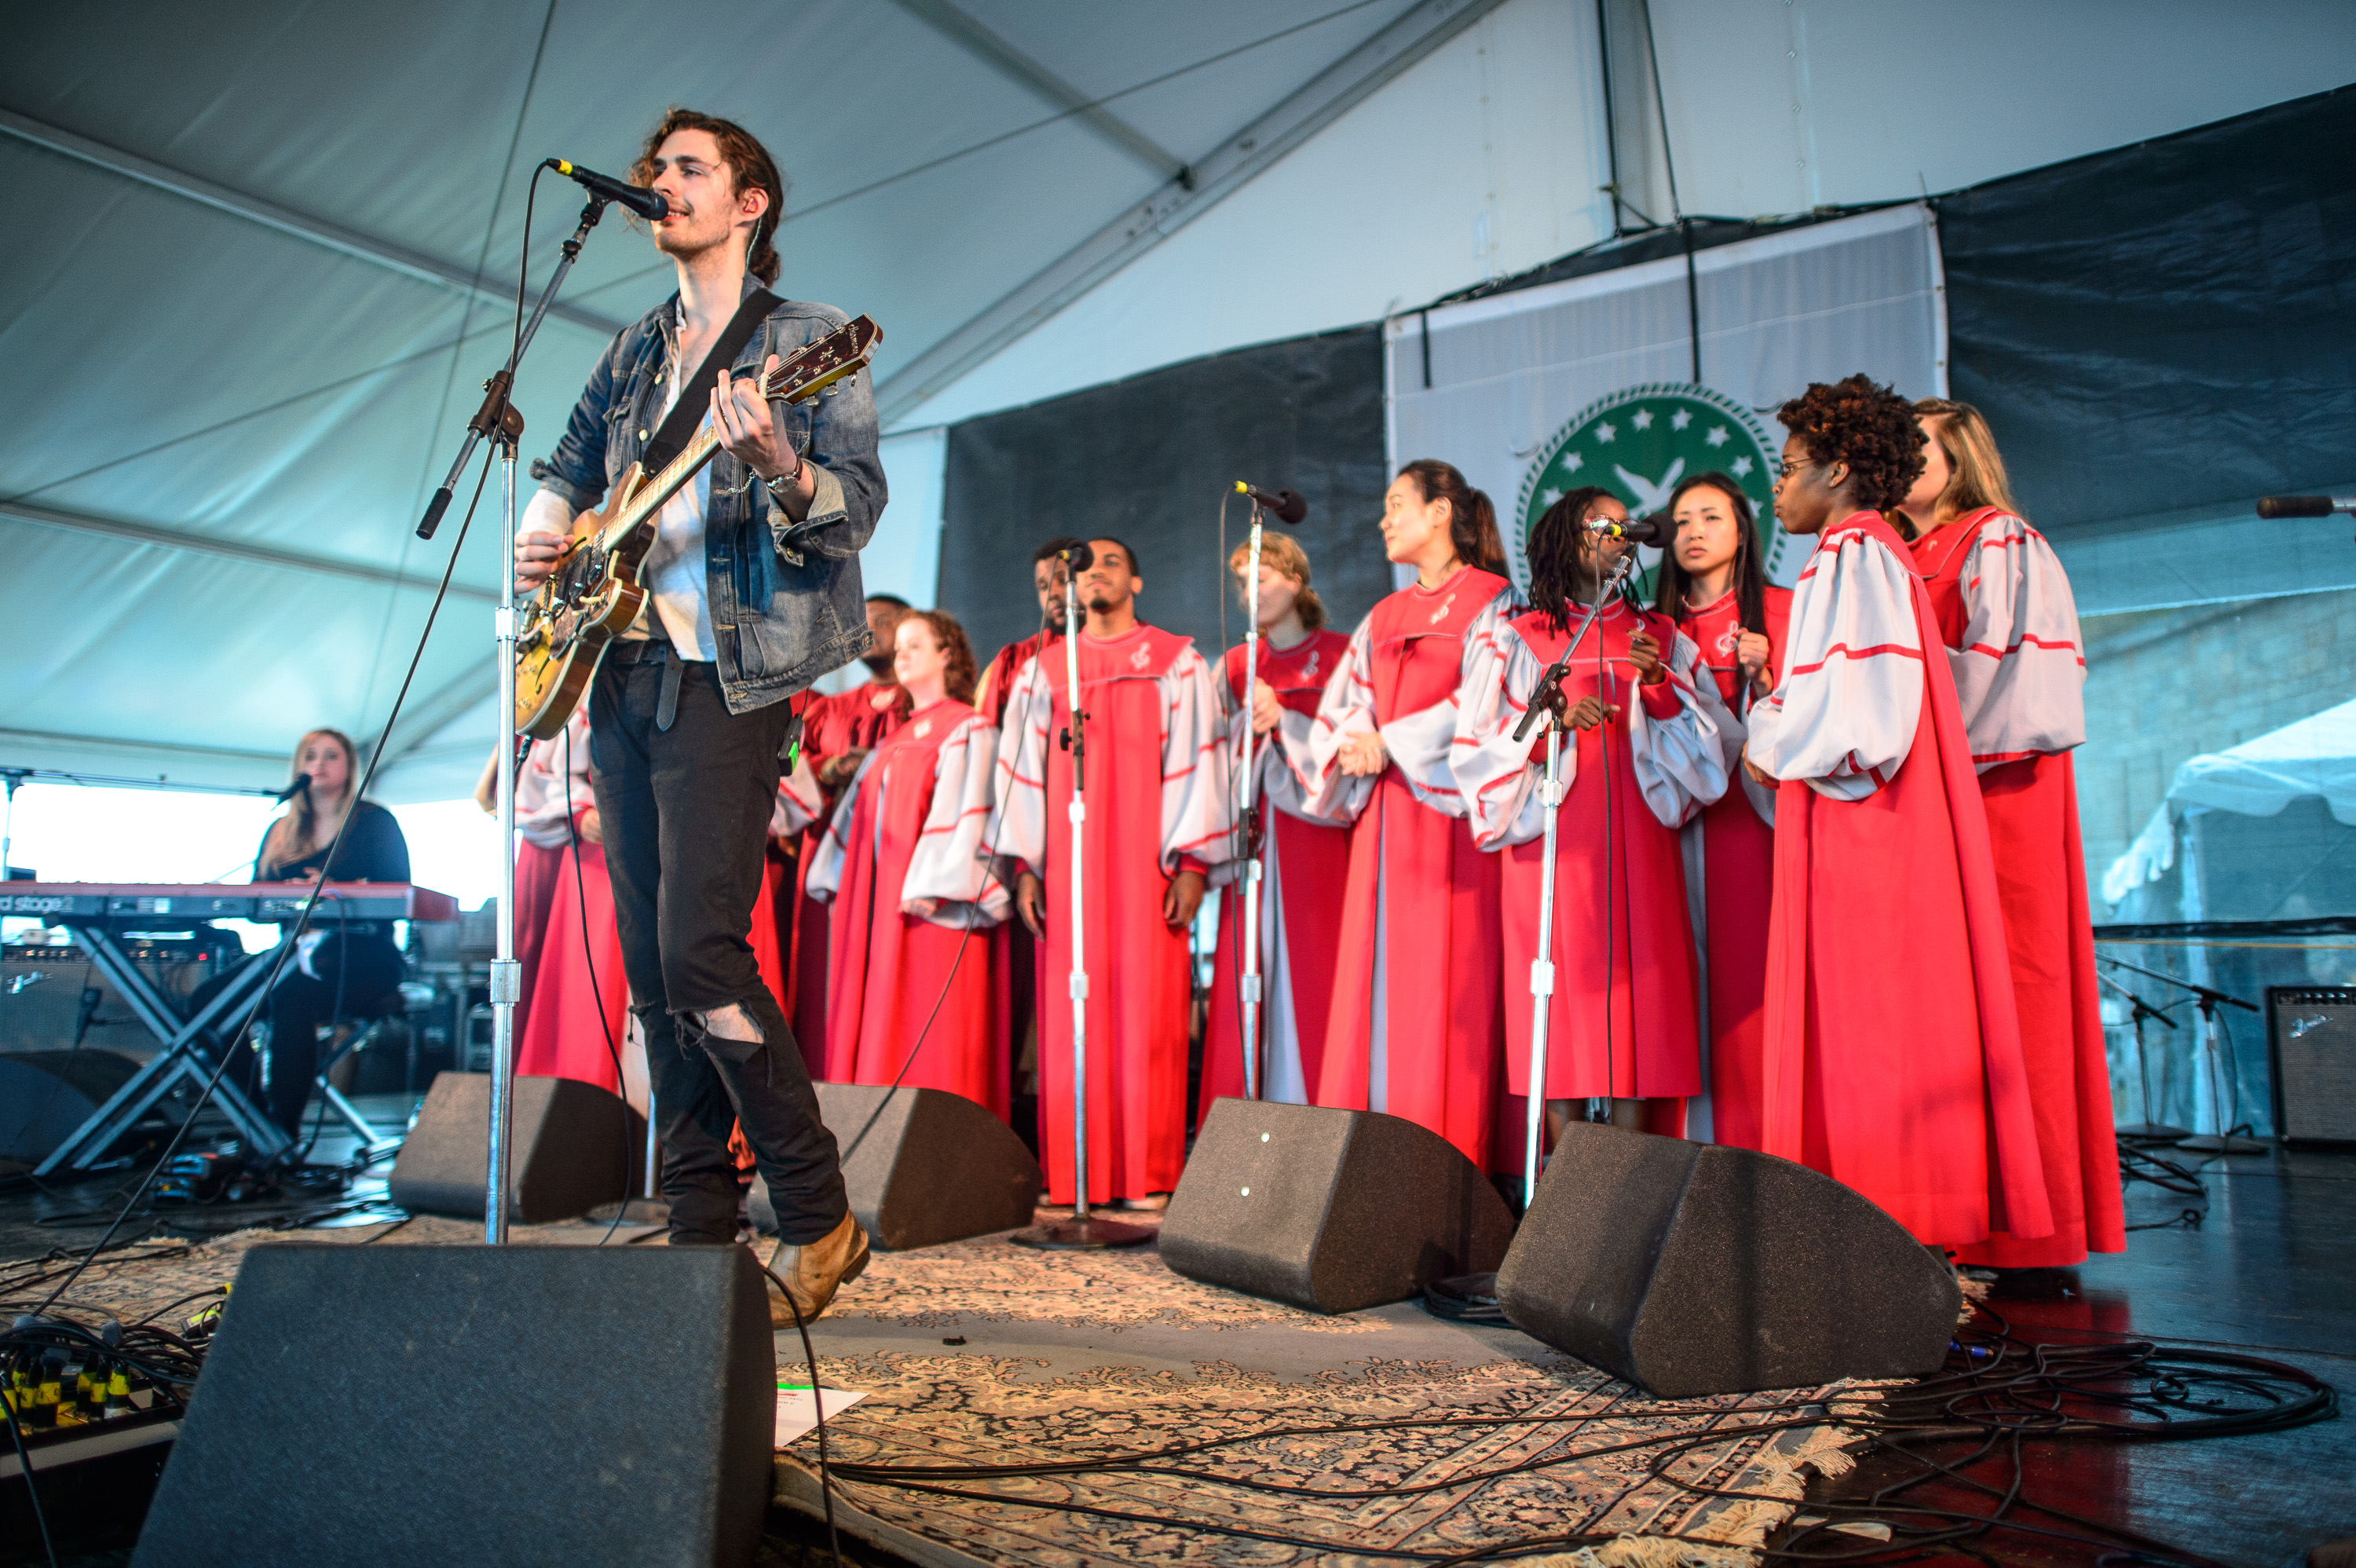 Hozier performs at the 2014 Newport Folk Festival